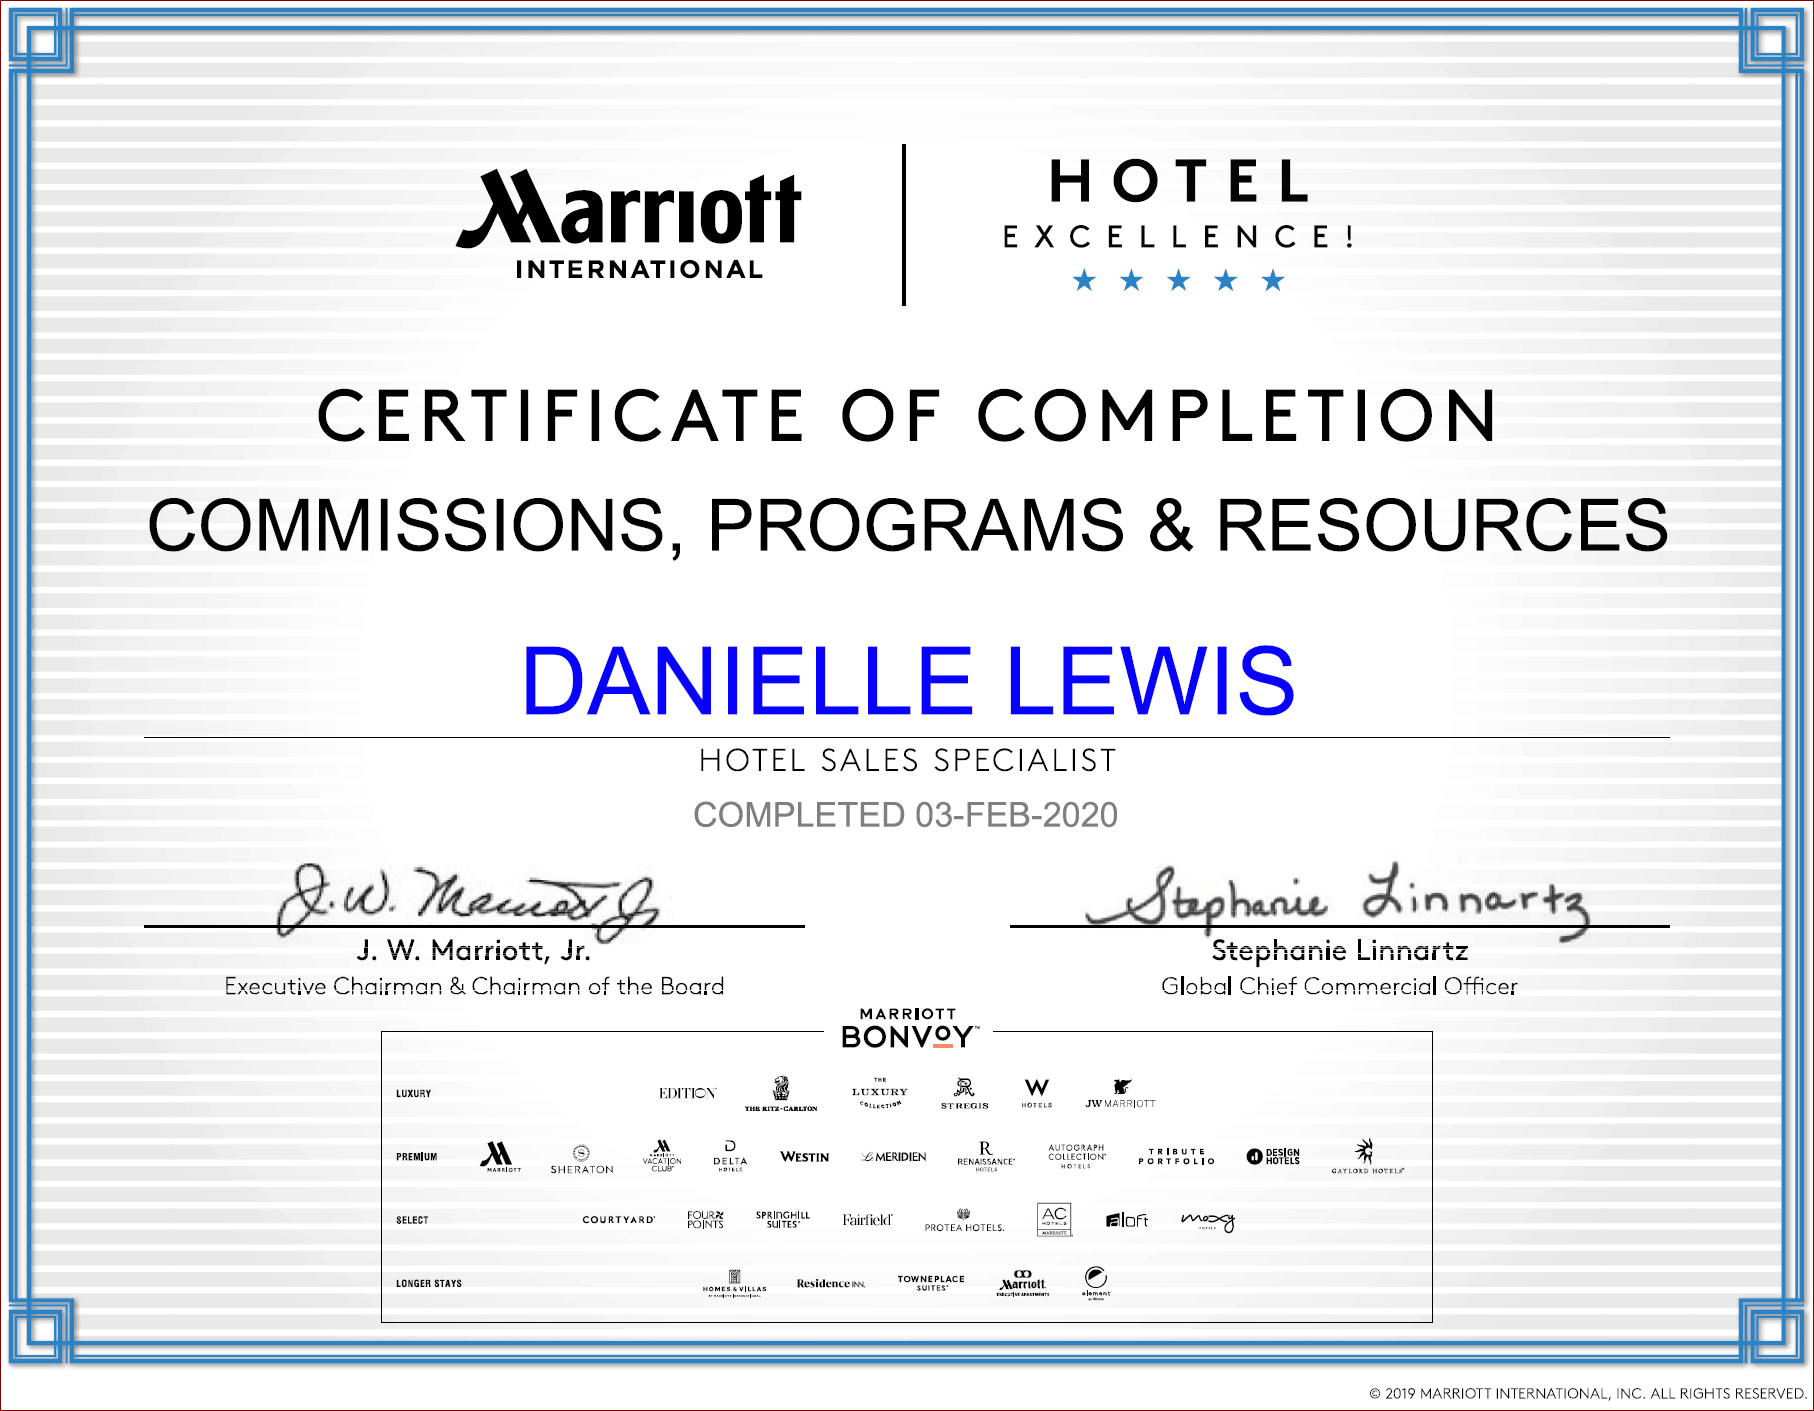 SelfishMe Travel - Marriott International Commission Programs and Resources Certificate